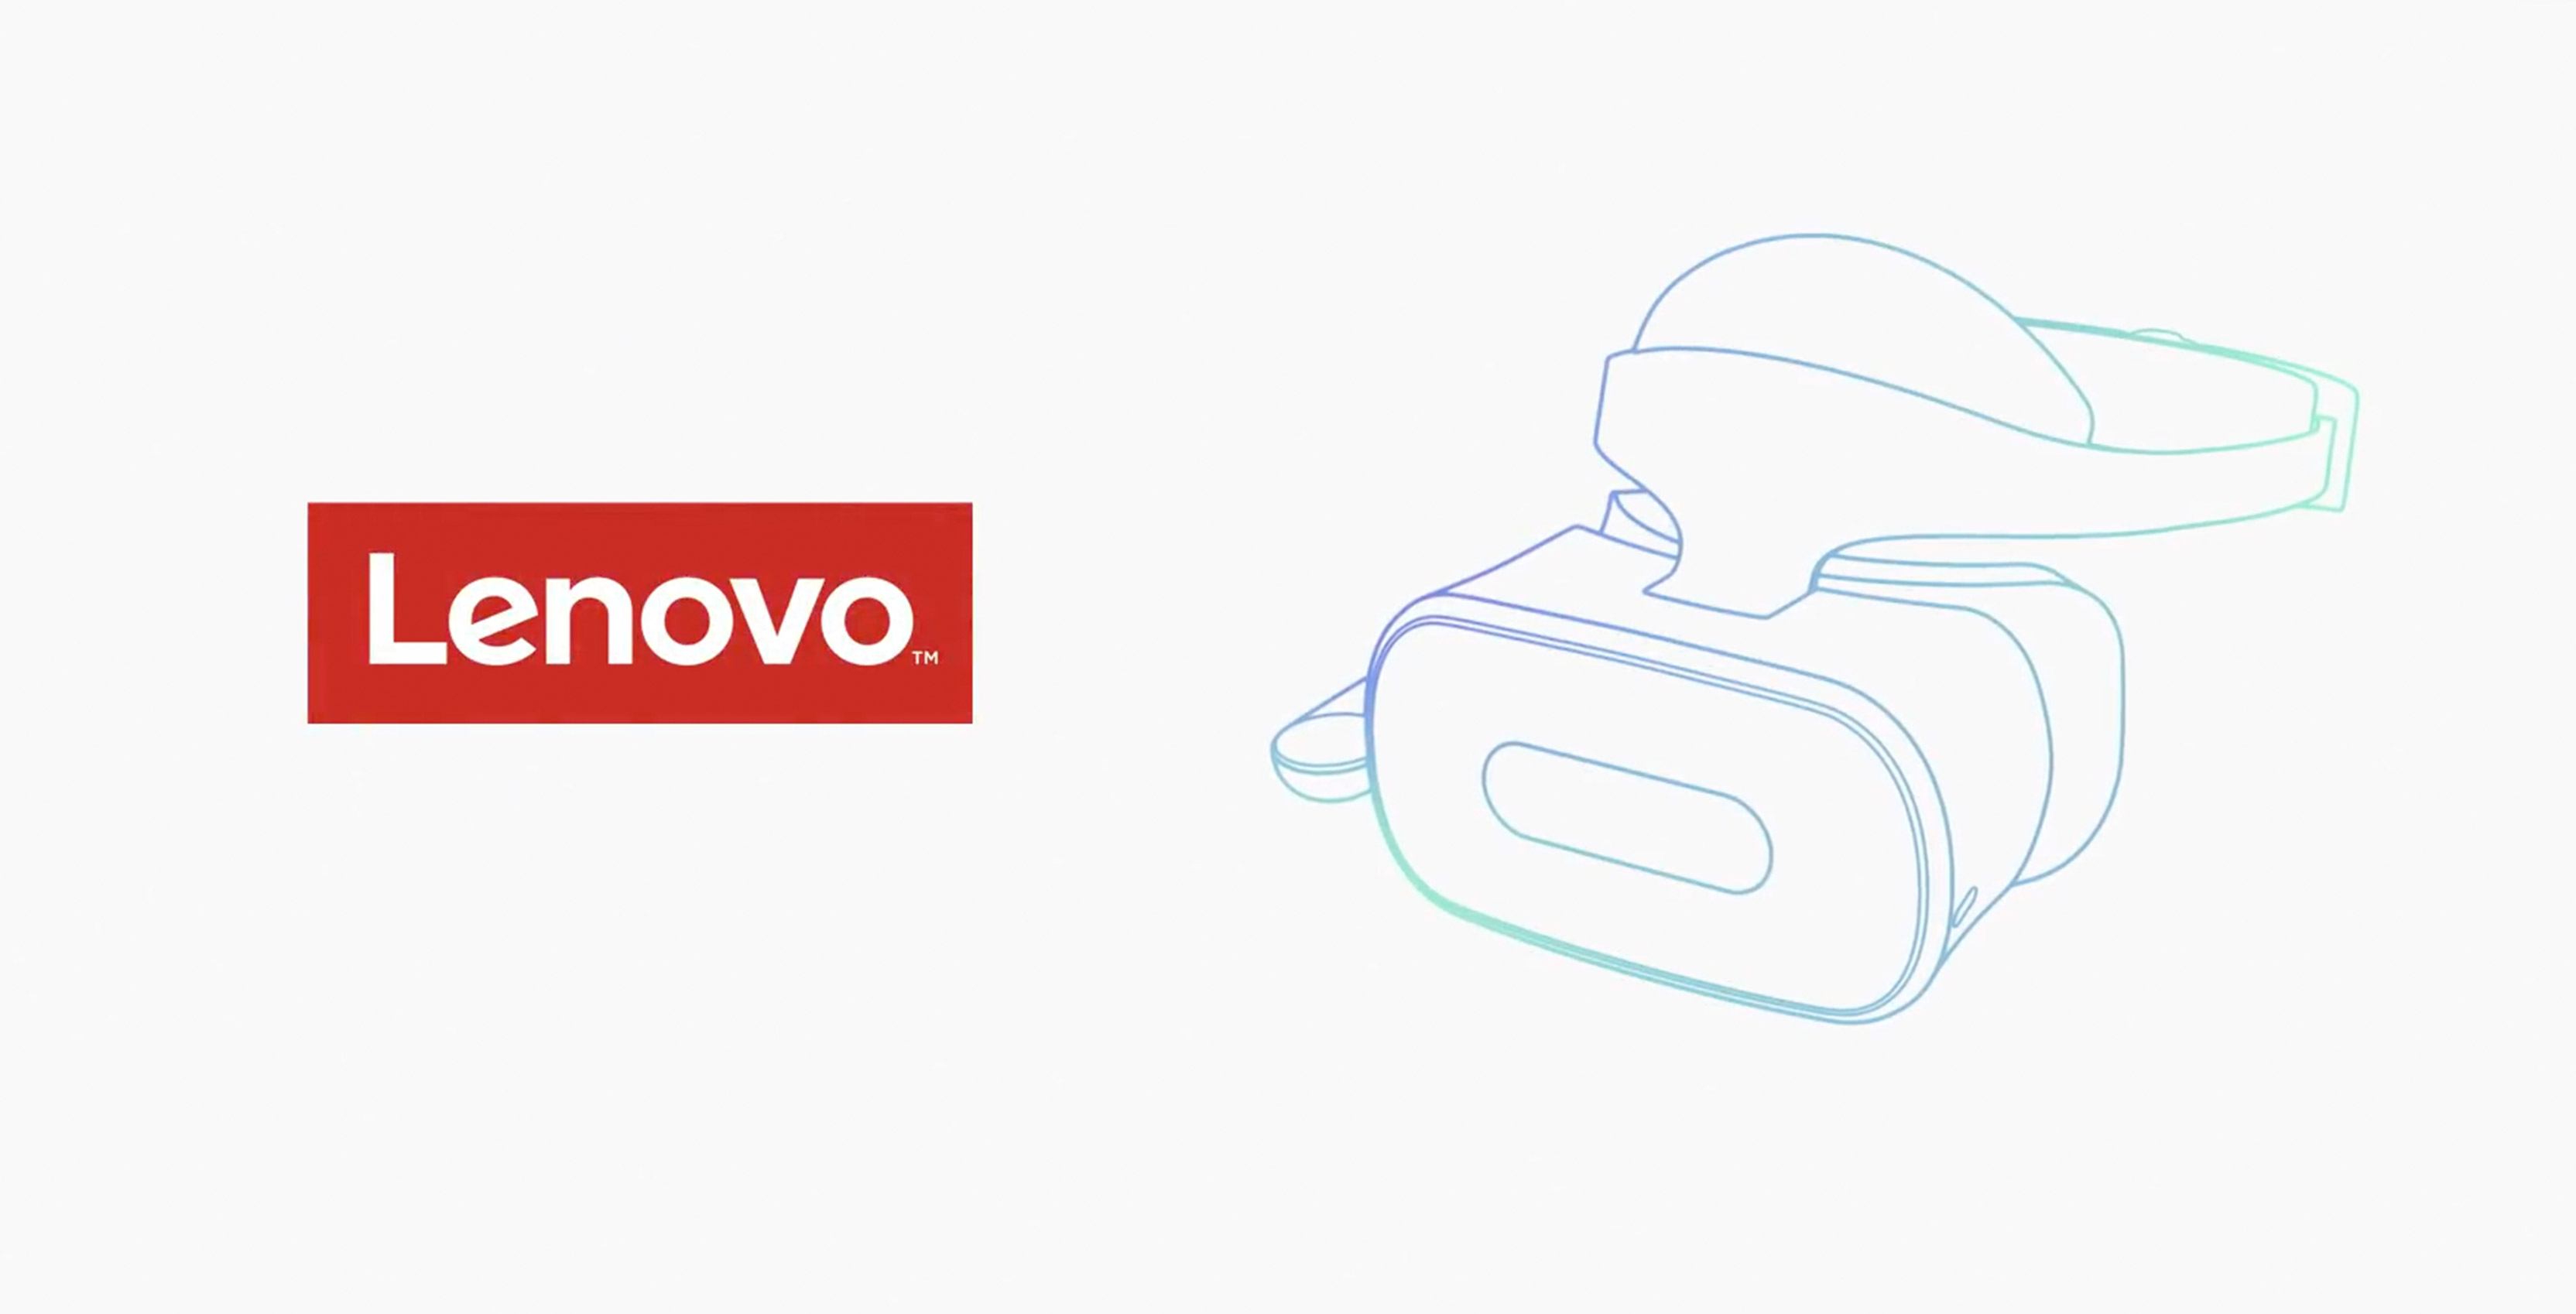 Lenovo Mirage Solo is a standalone Daydream VR headset